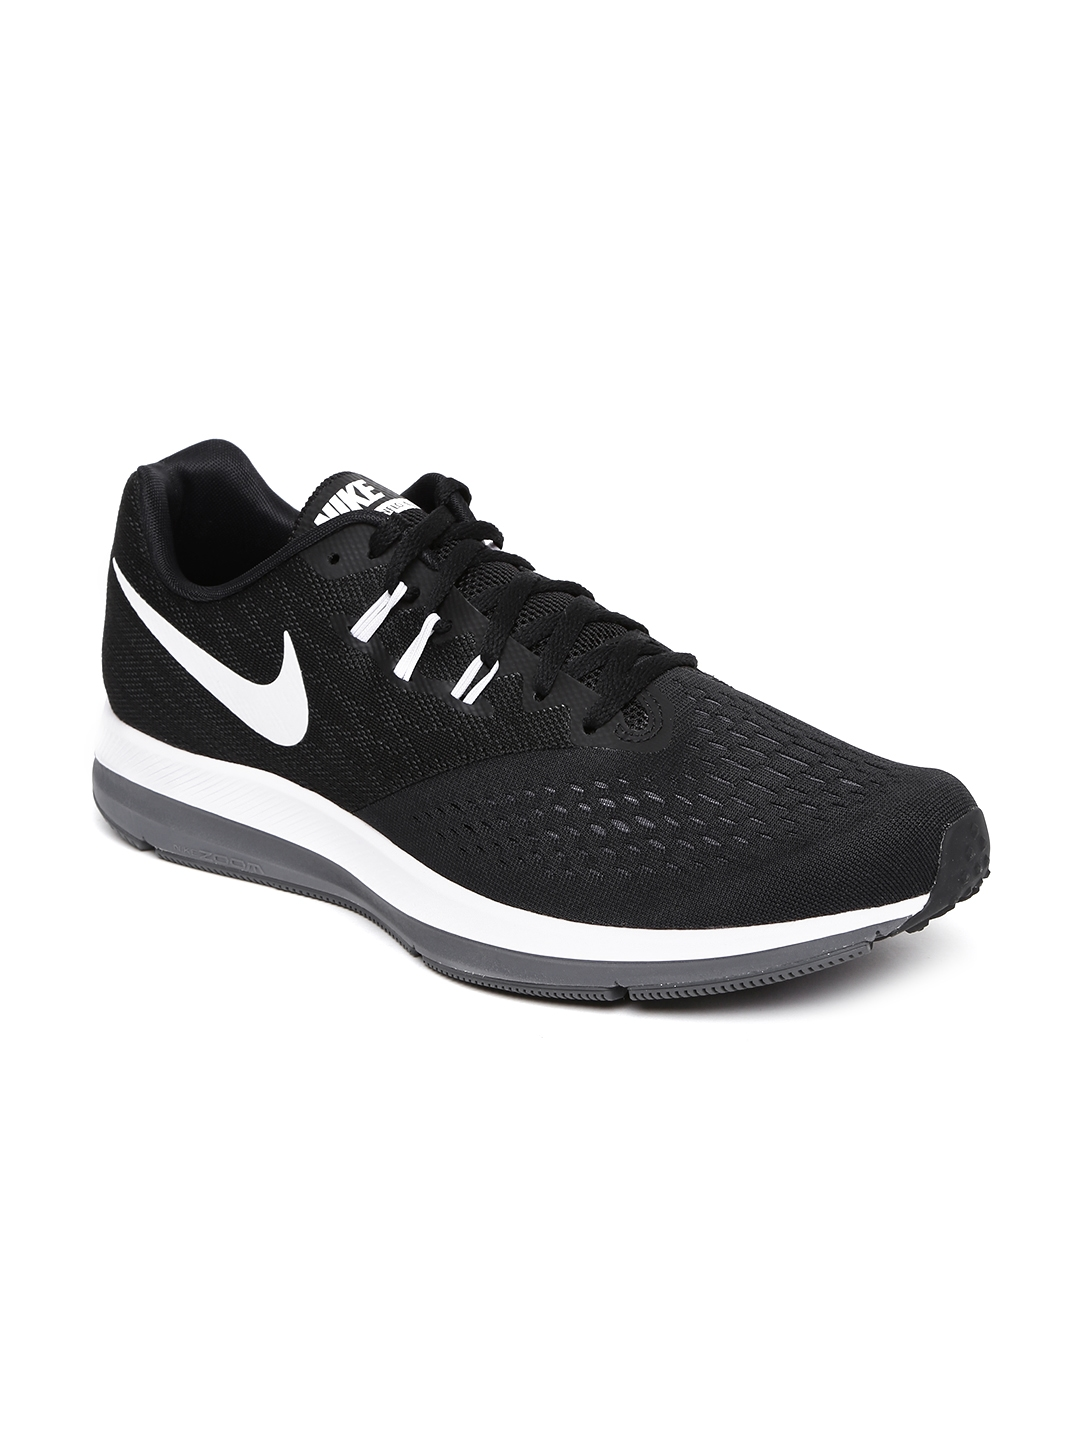 01f6608c55bc7 Buy Nike Men Black Zoom Winflo 4 Running Shoes - Sports Shoes for ...